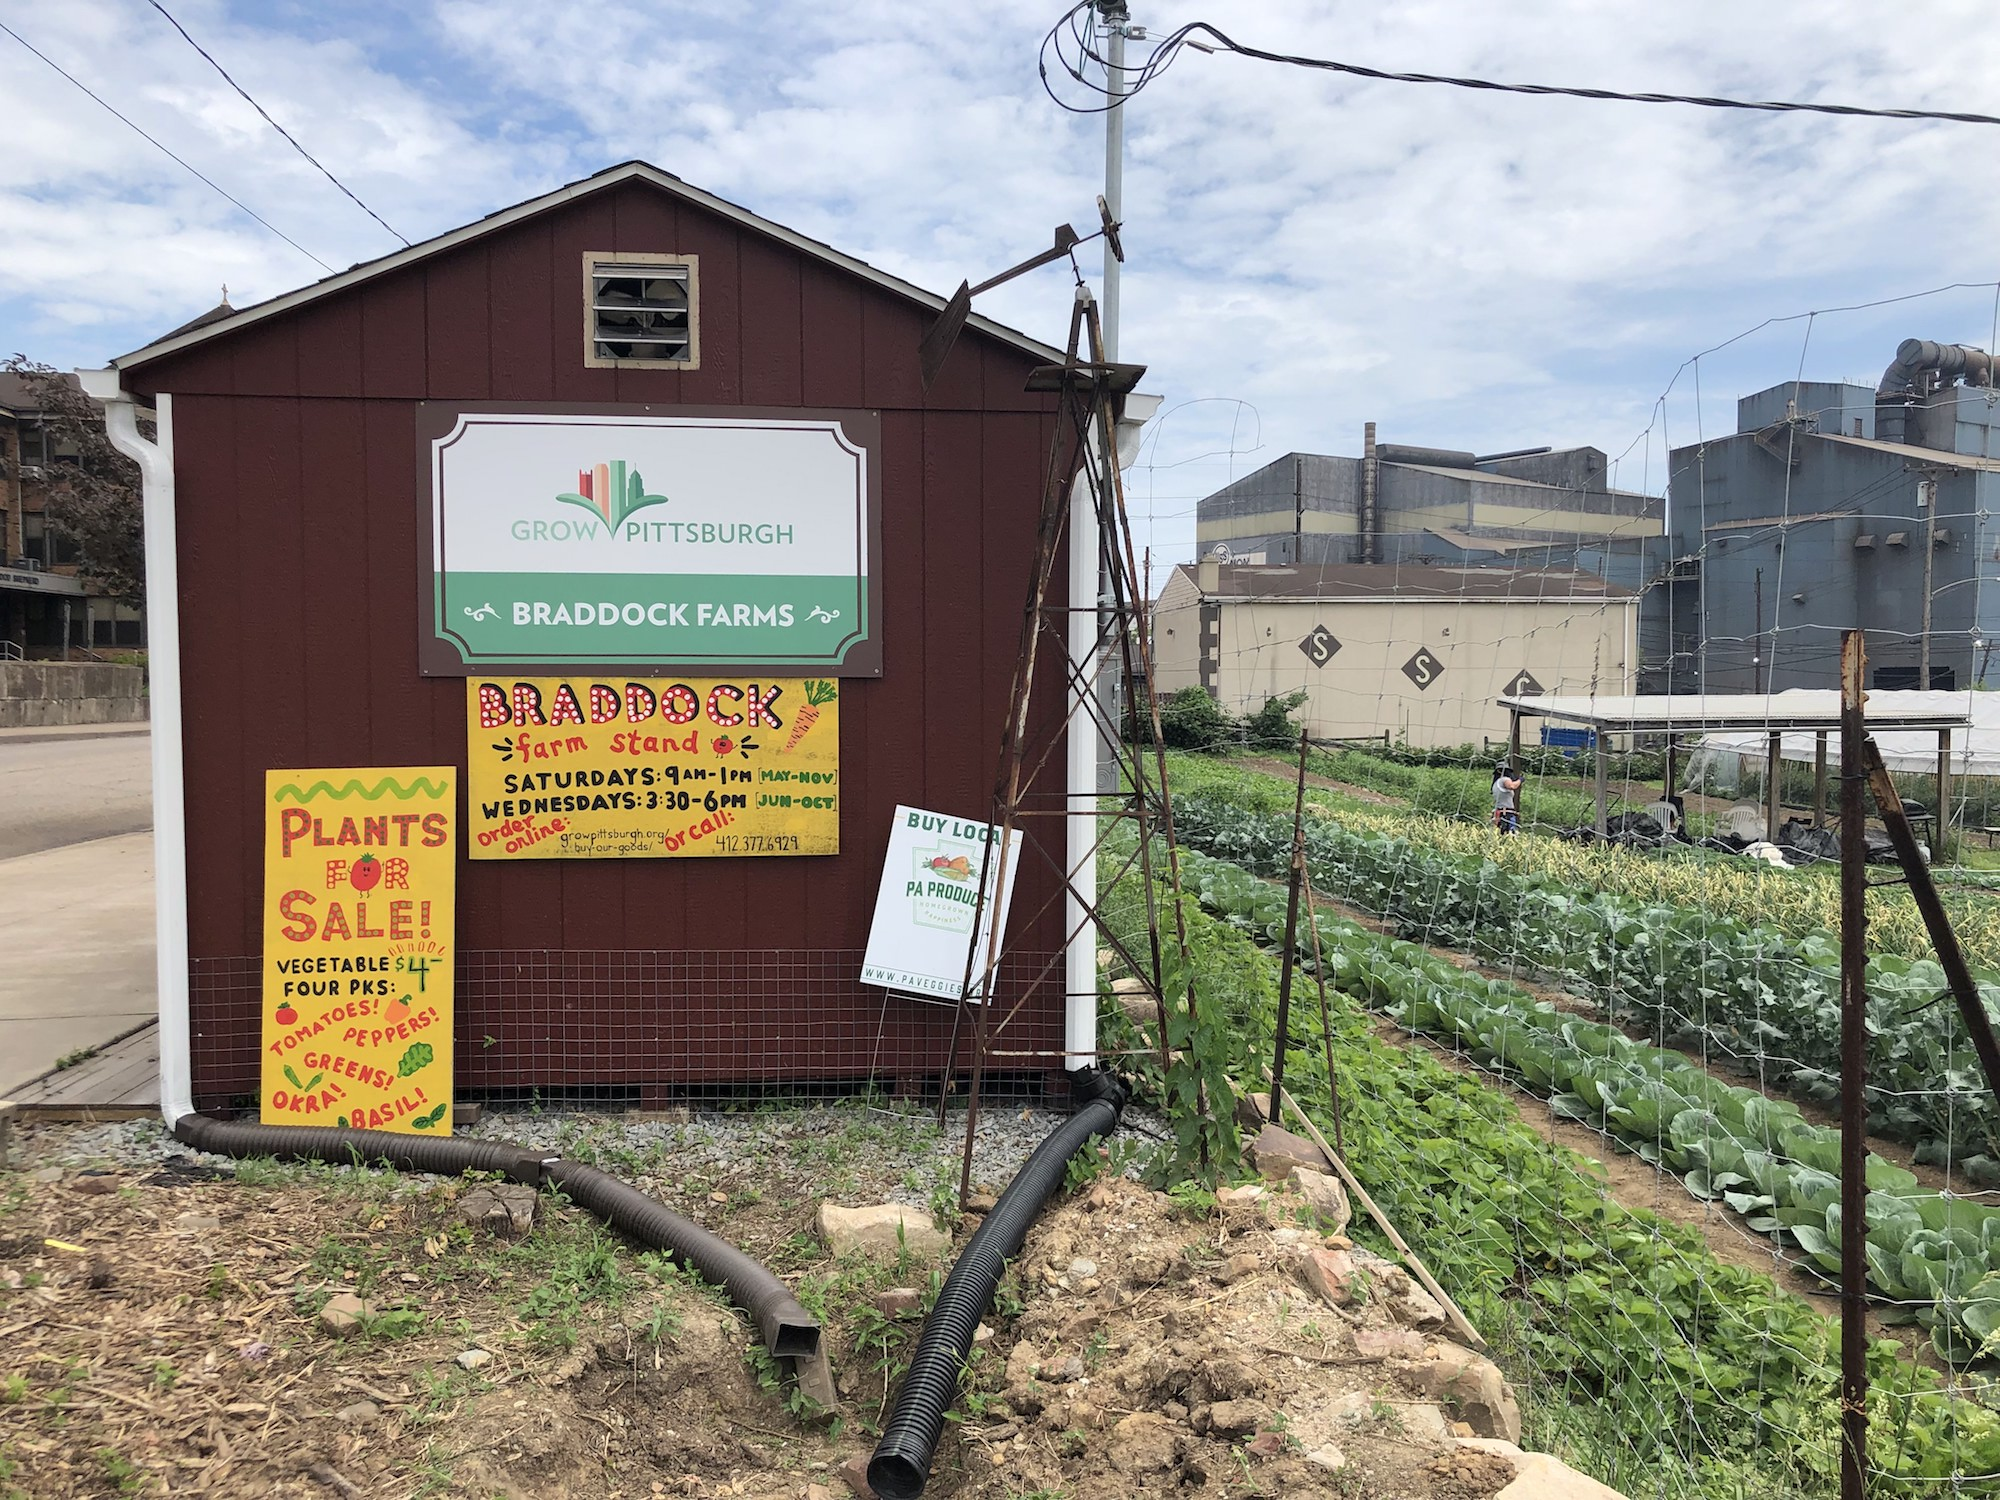 a red shed is marked with several signs including a Braddock Farms marker. To the right, there are rows of green crops growing under blue cloudy skies